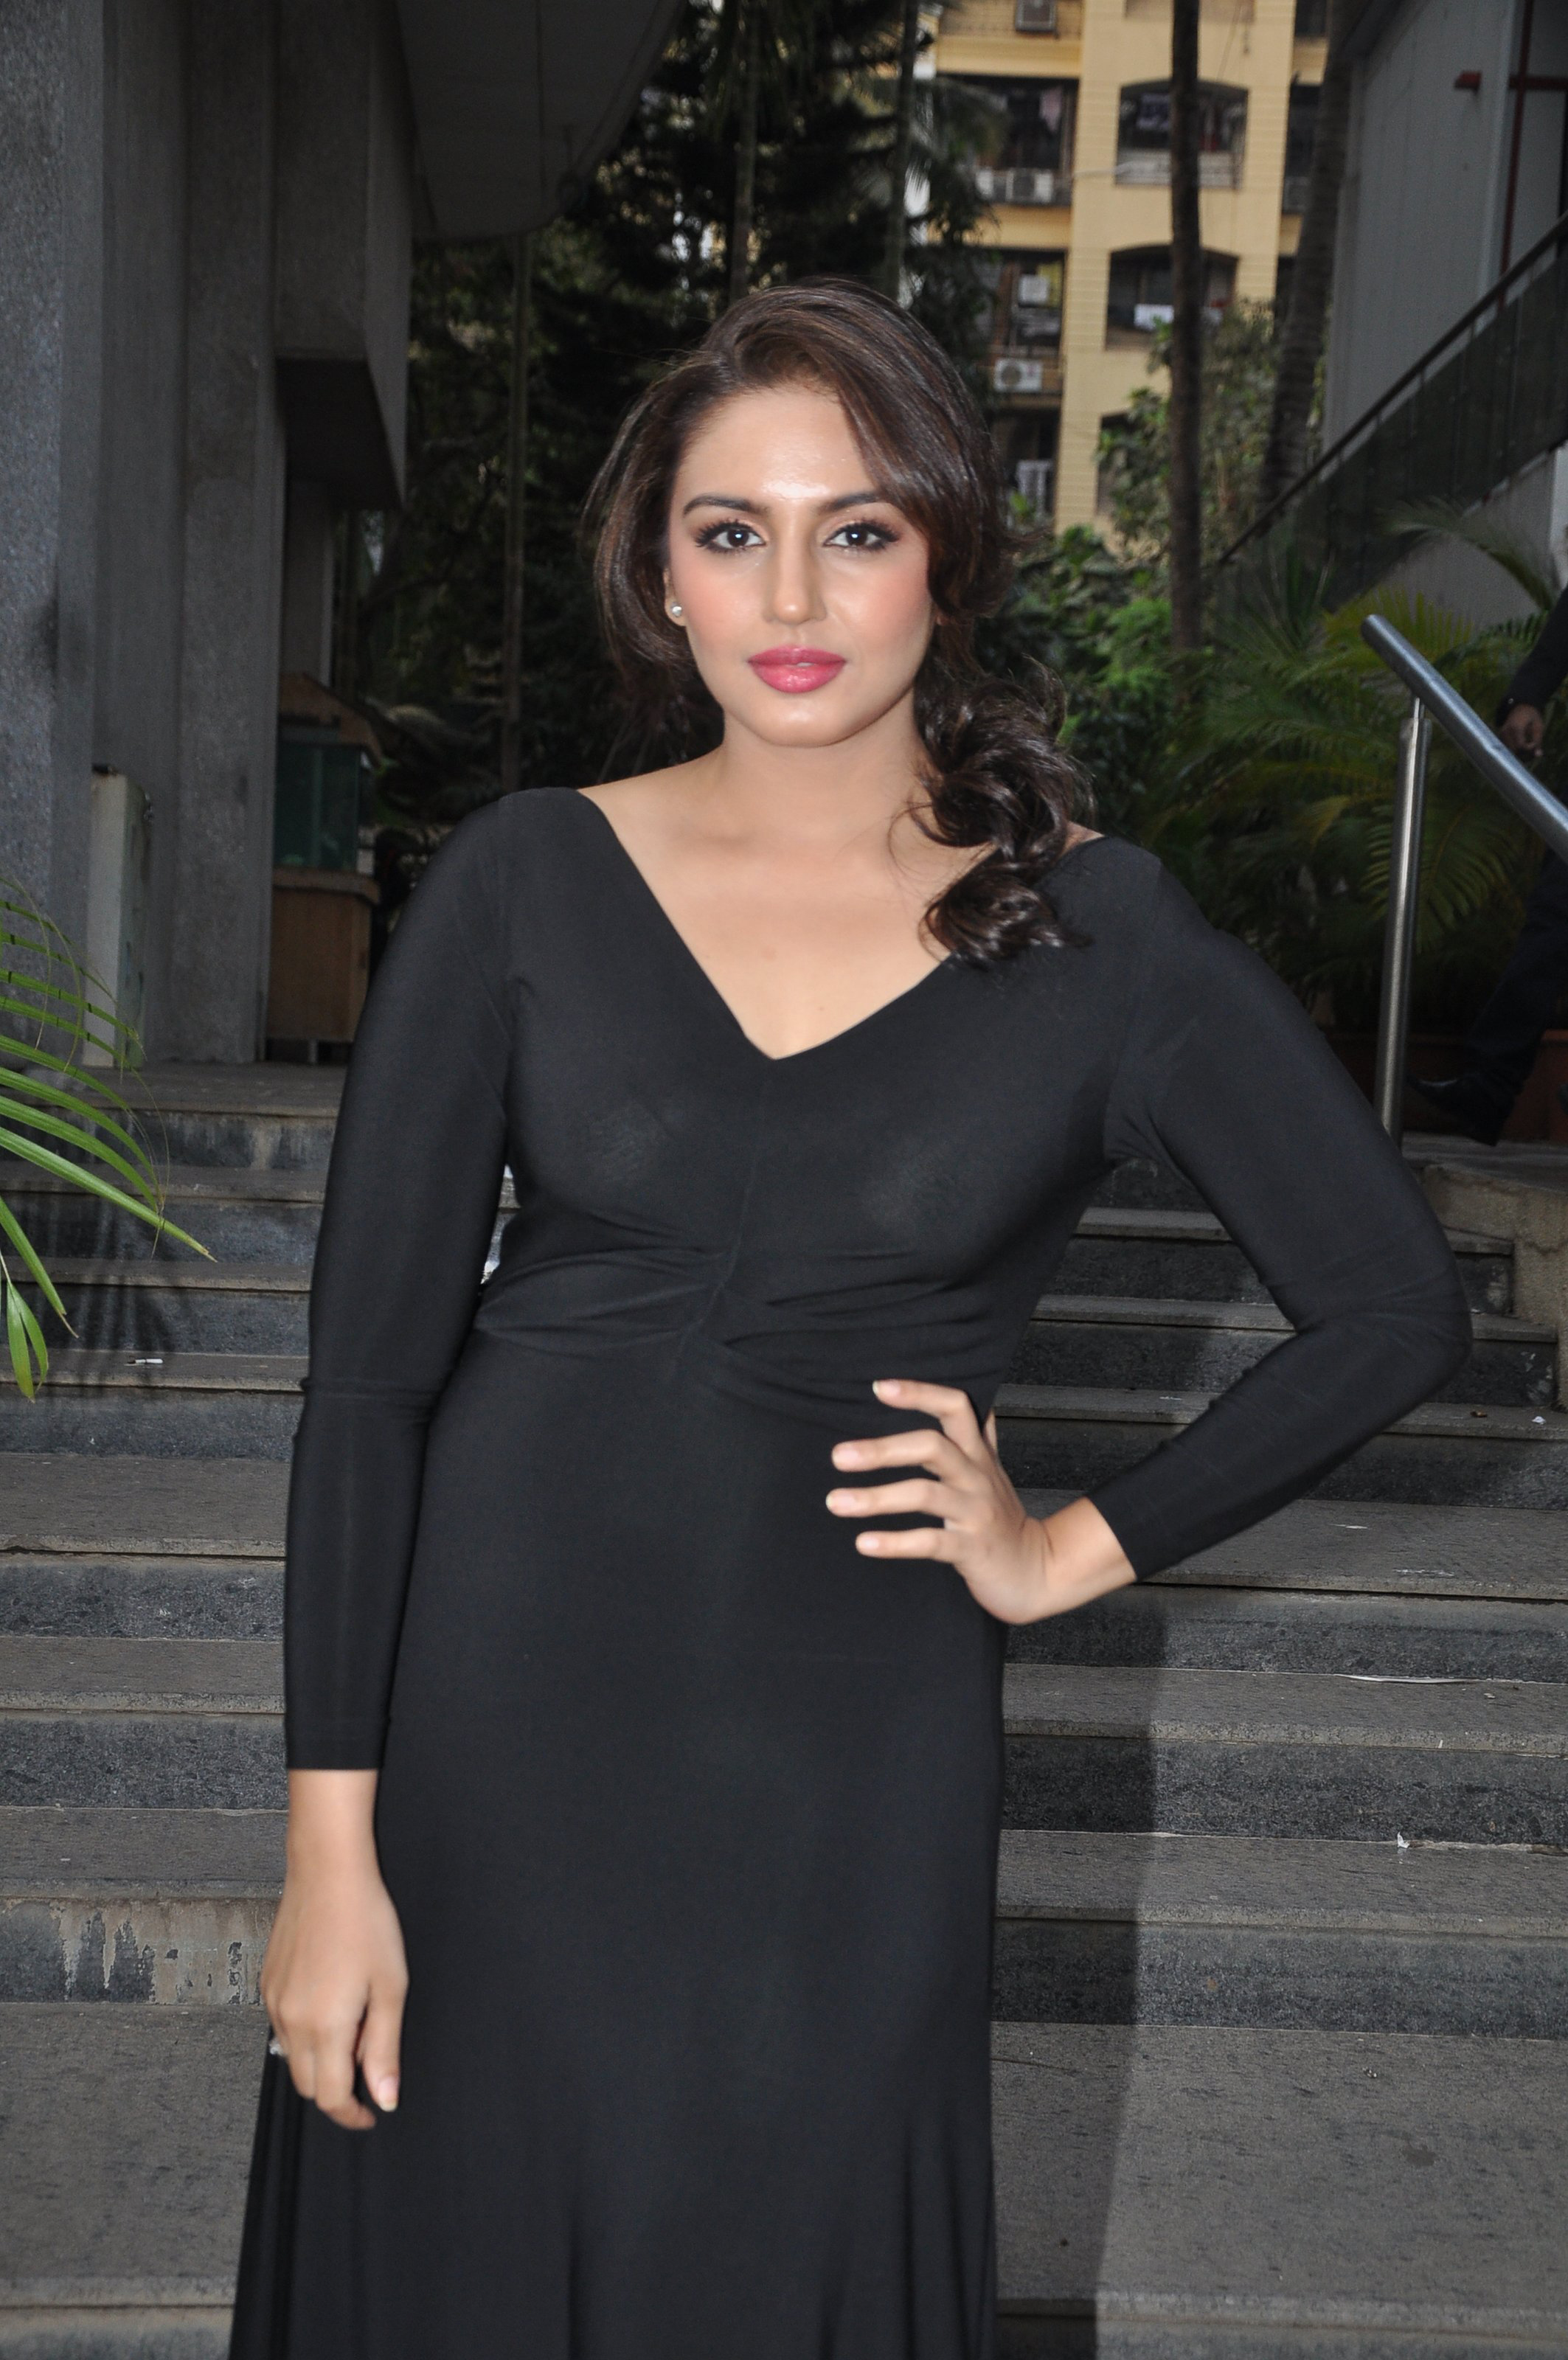 Huma Qureshi Exposes Enough In See-Through Attire  Gallery at PardaPhash